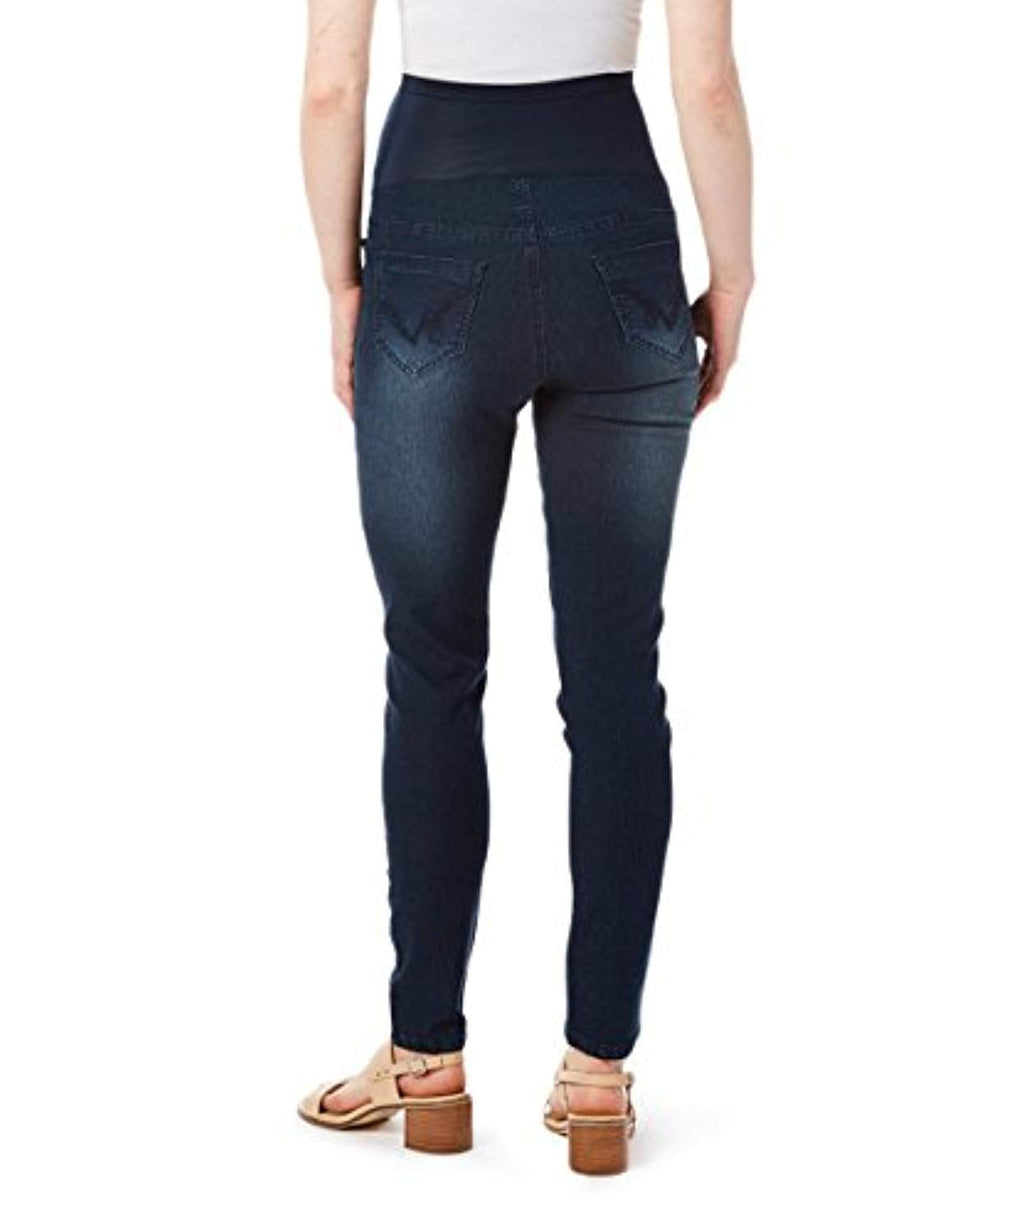 back view skinny maternity jeans